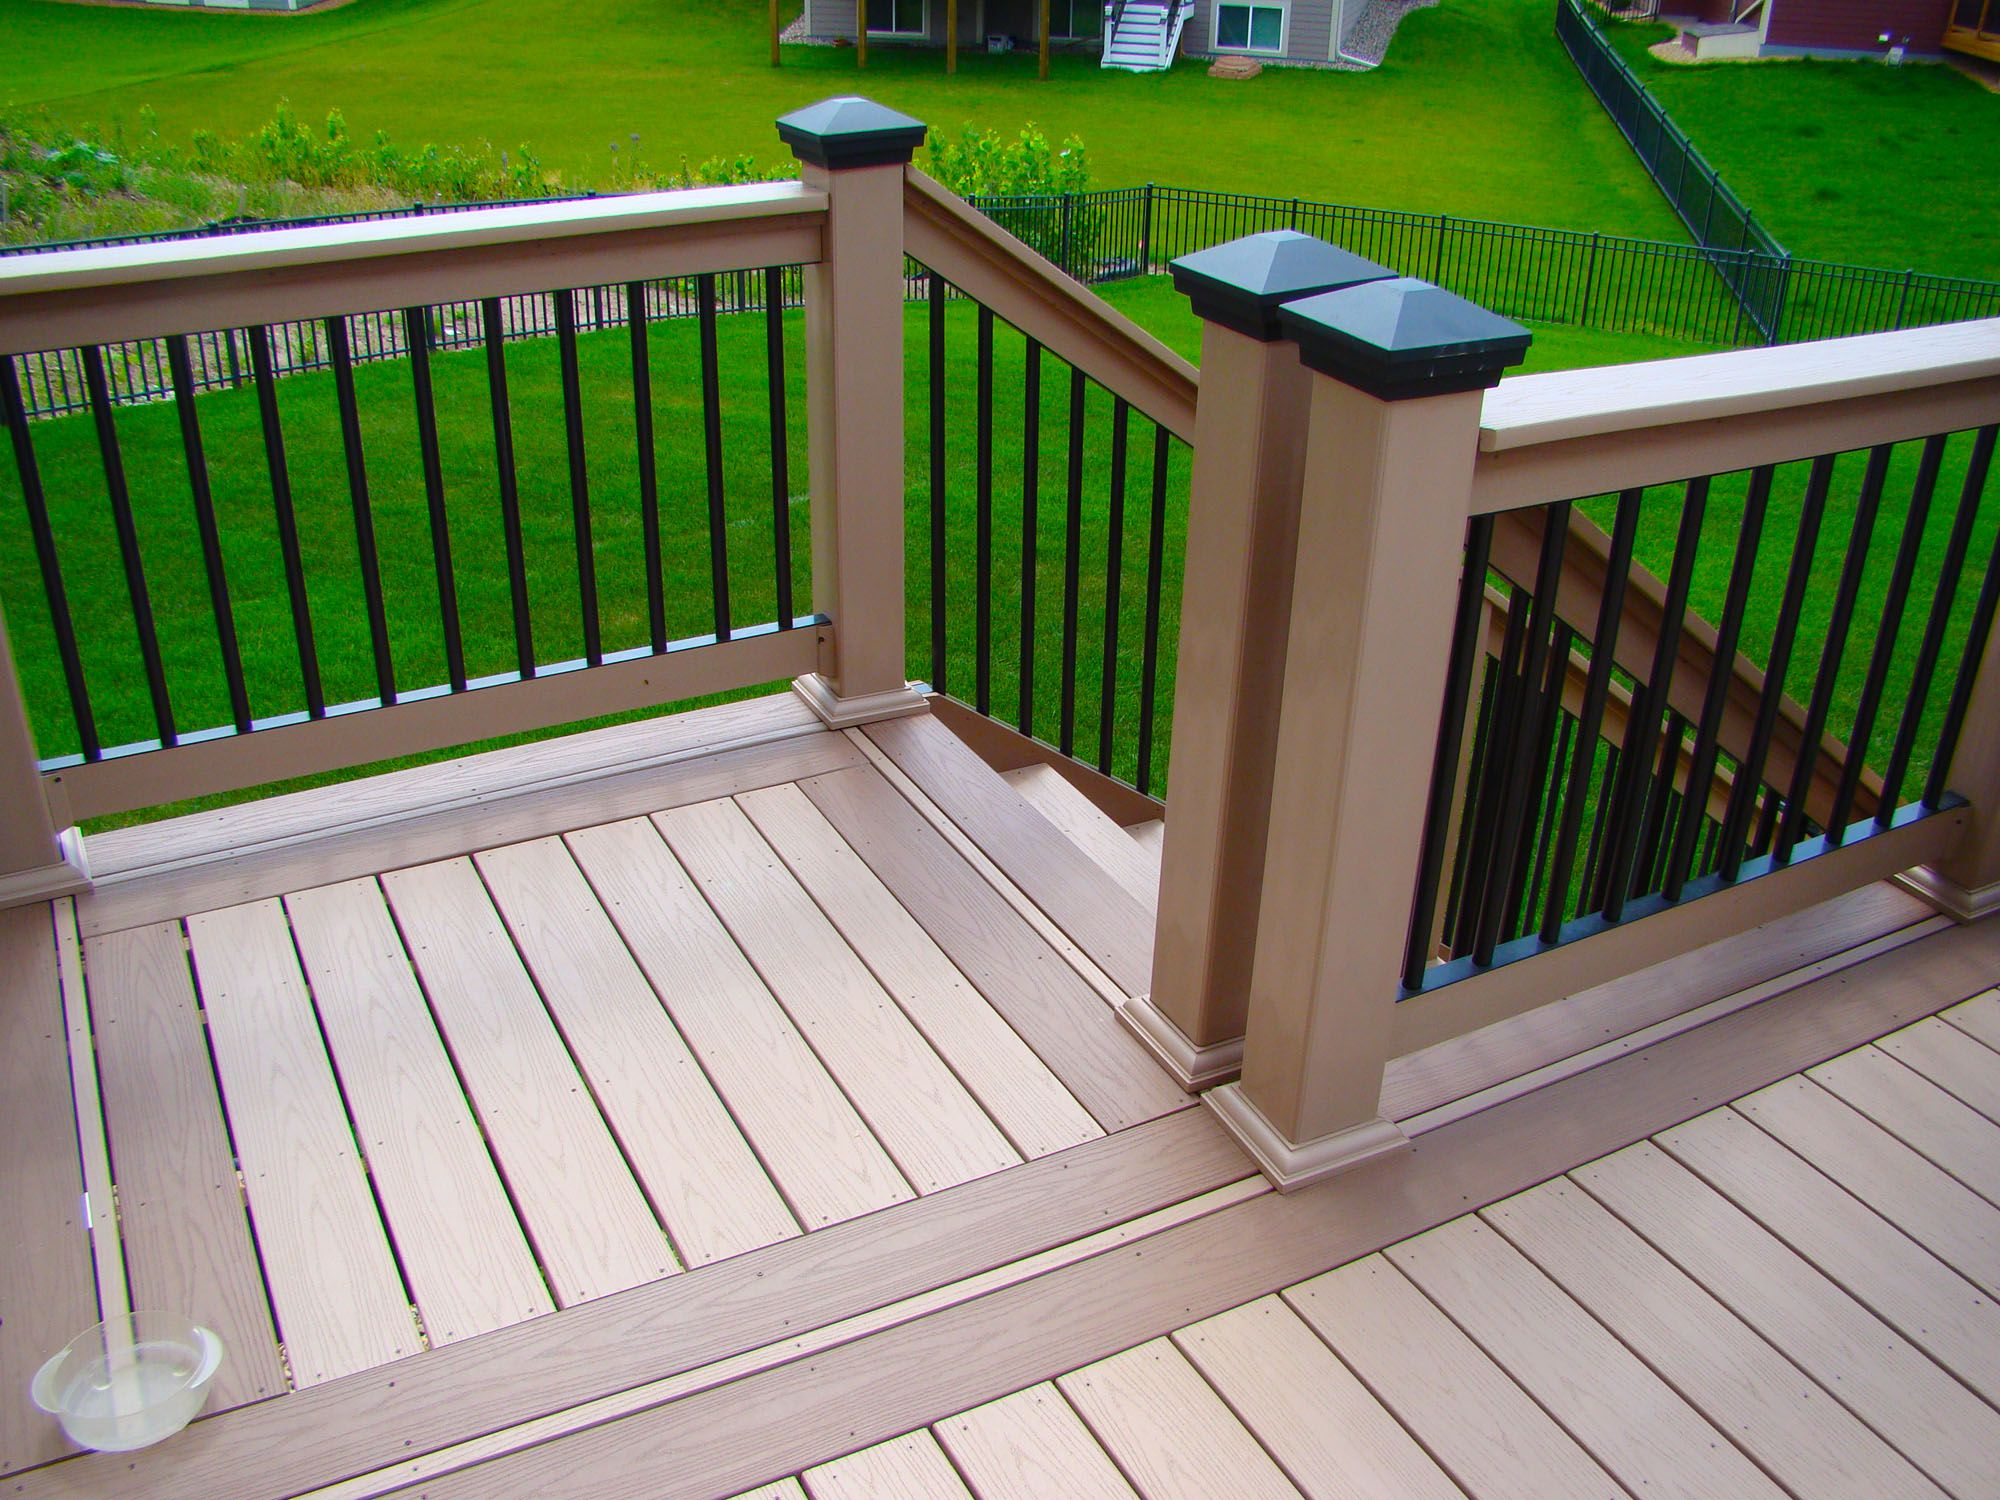 Decorative 4x4 Post Wraps Azekr Decking And Aluminum Railing With Azek Post Wraps Installed